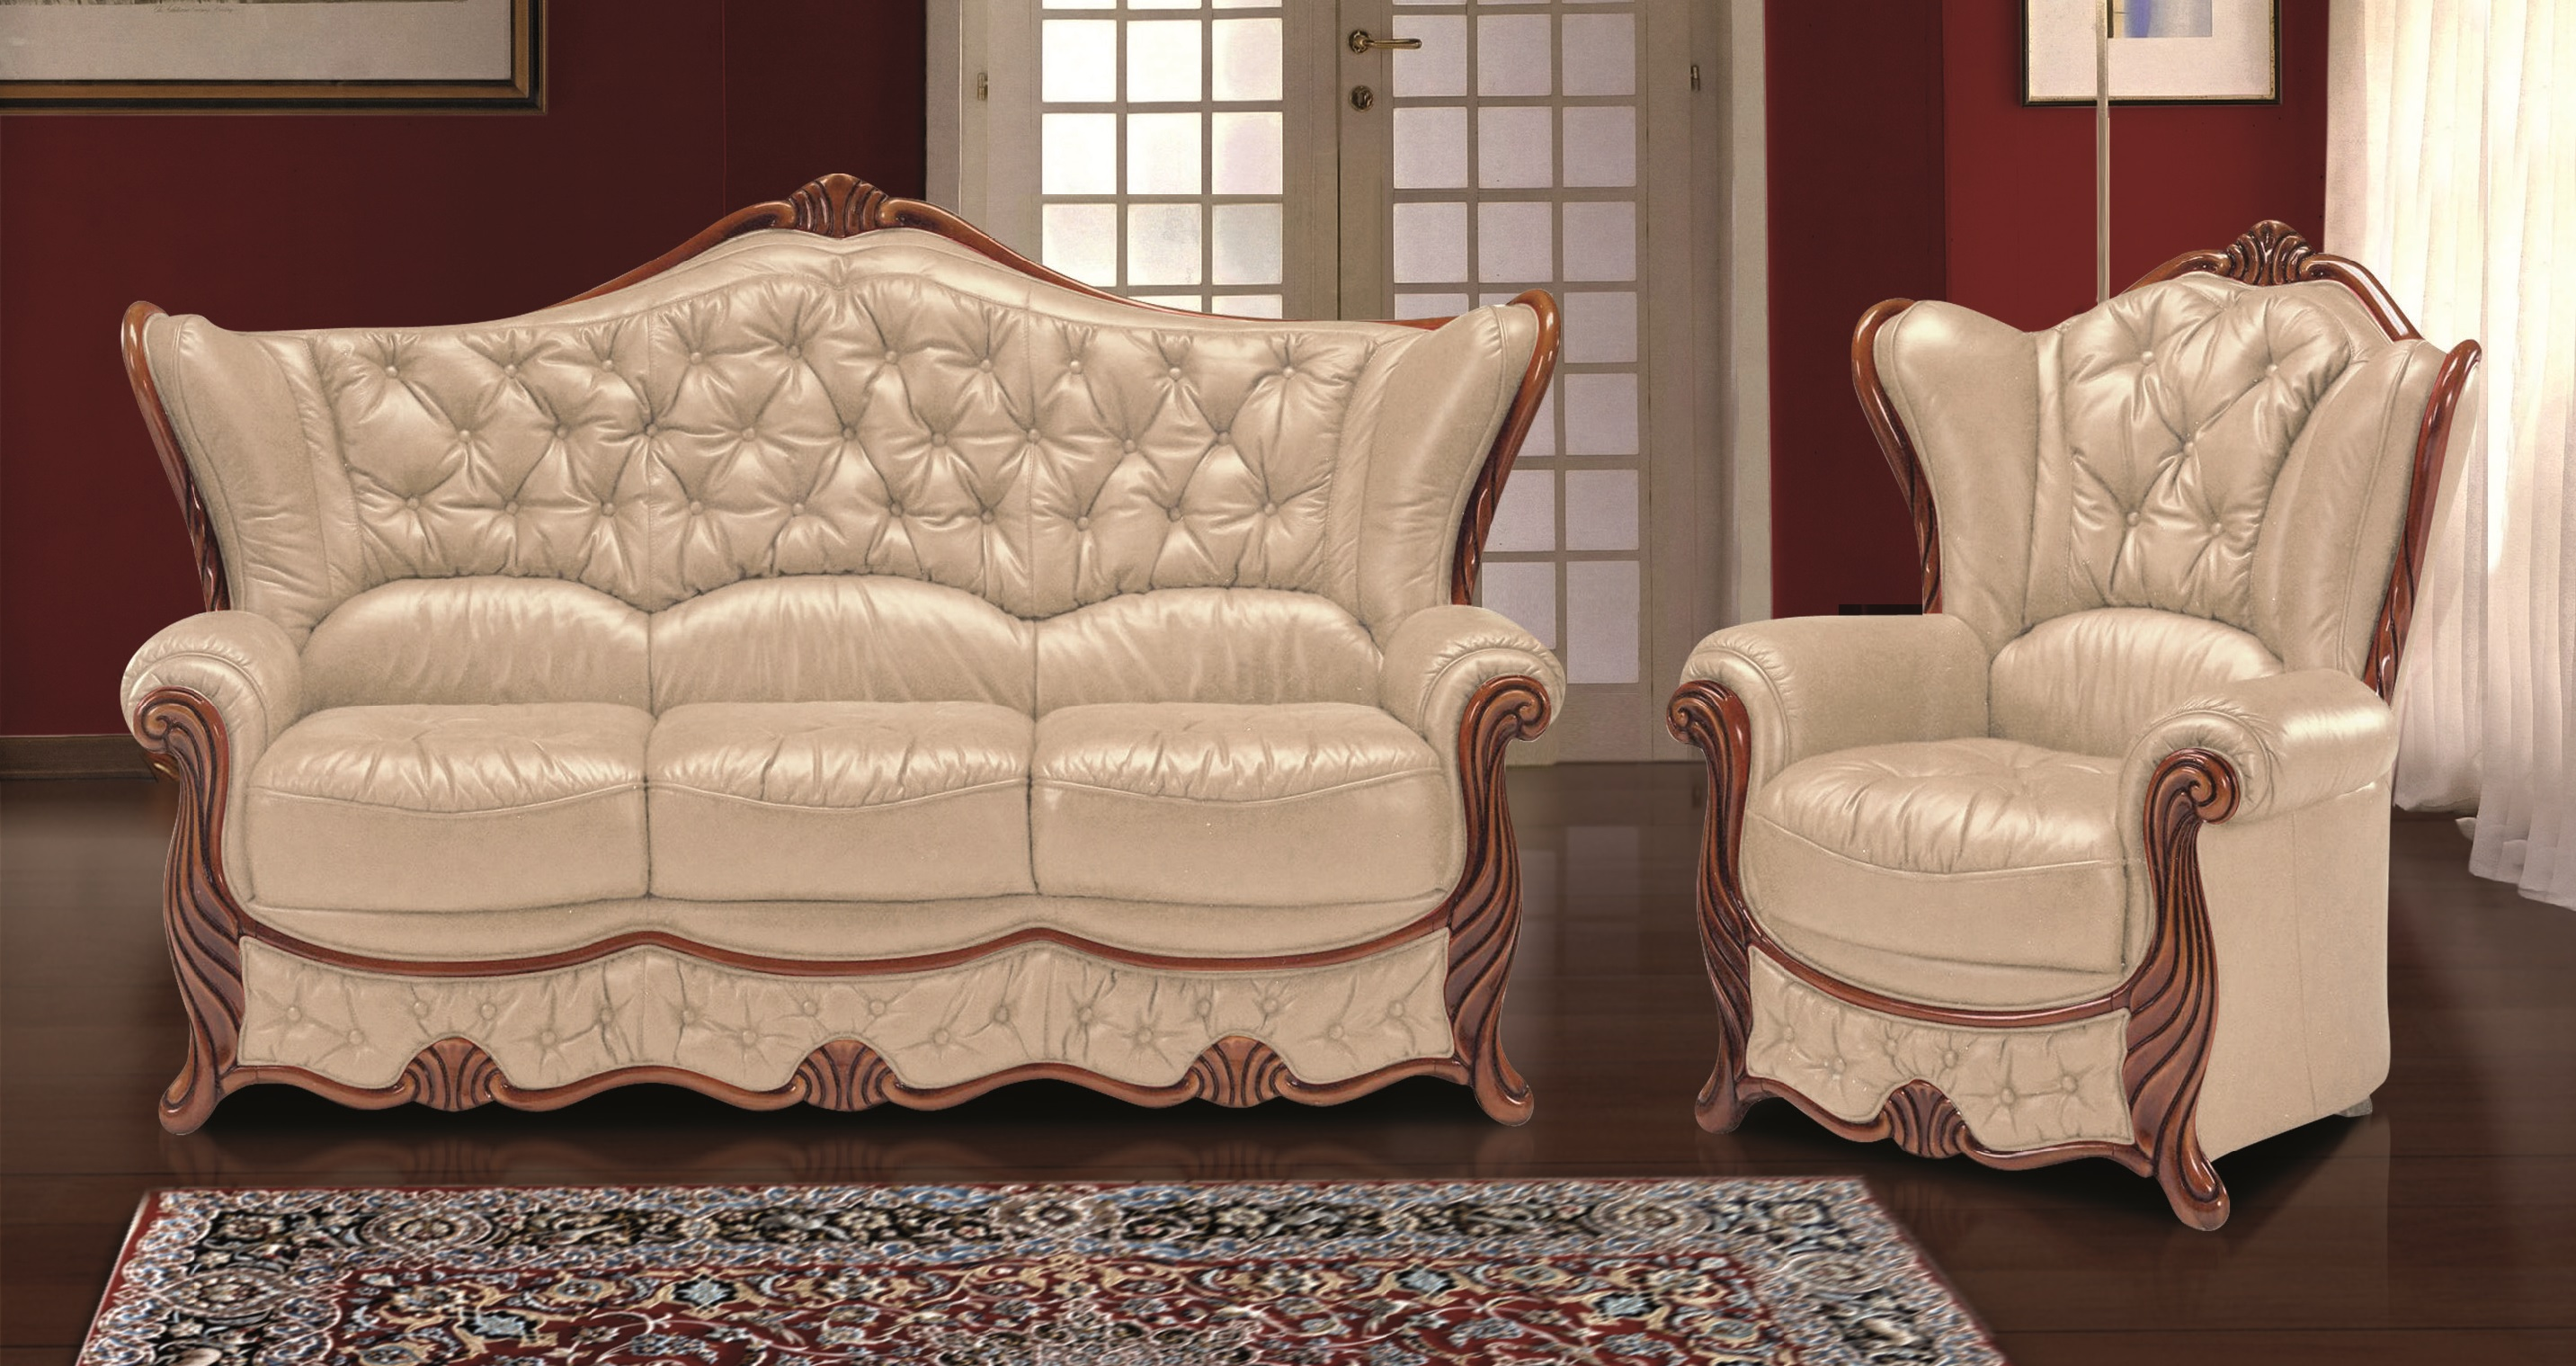 Lounge Suites Italian Leather Lounge Suites Find The Best Italian Leather